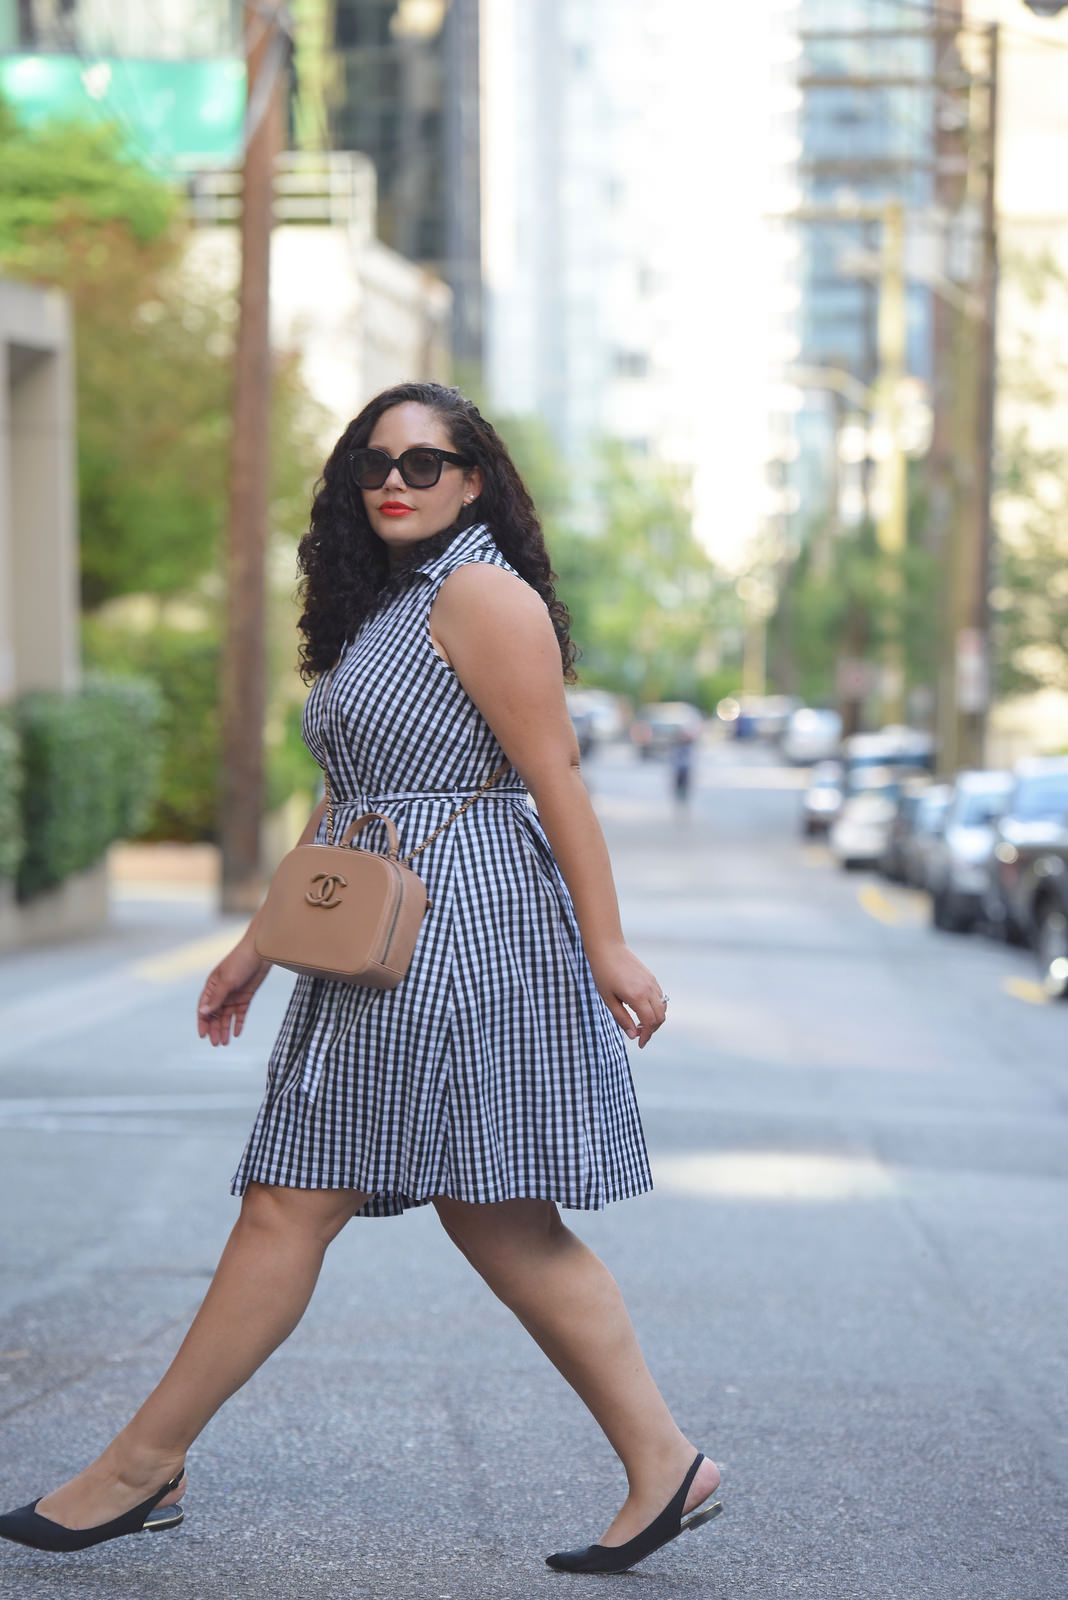 Color printing downtown vancouver - Curvy Women Style